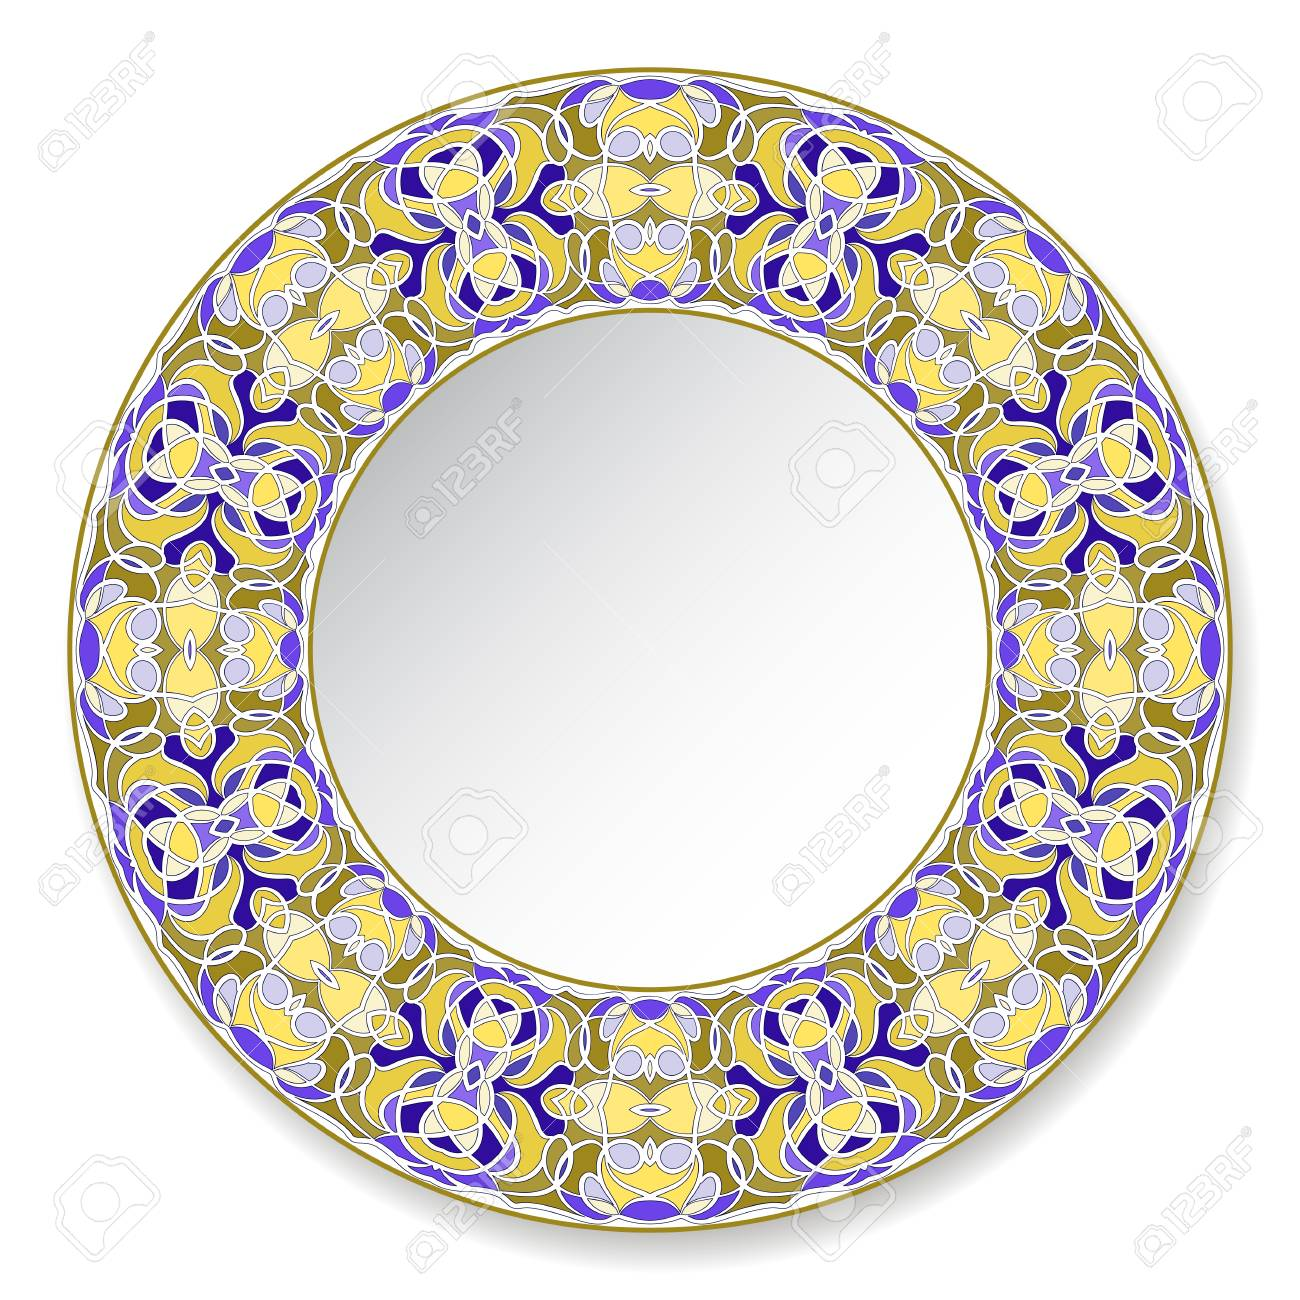 Colorfull decorative plate with pattern in Oriental style. A circular ornament for your design. Vector illustration. - 127072177